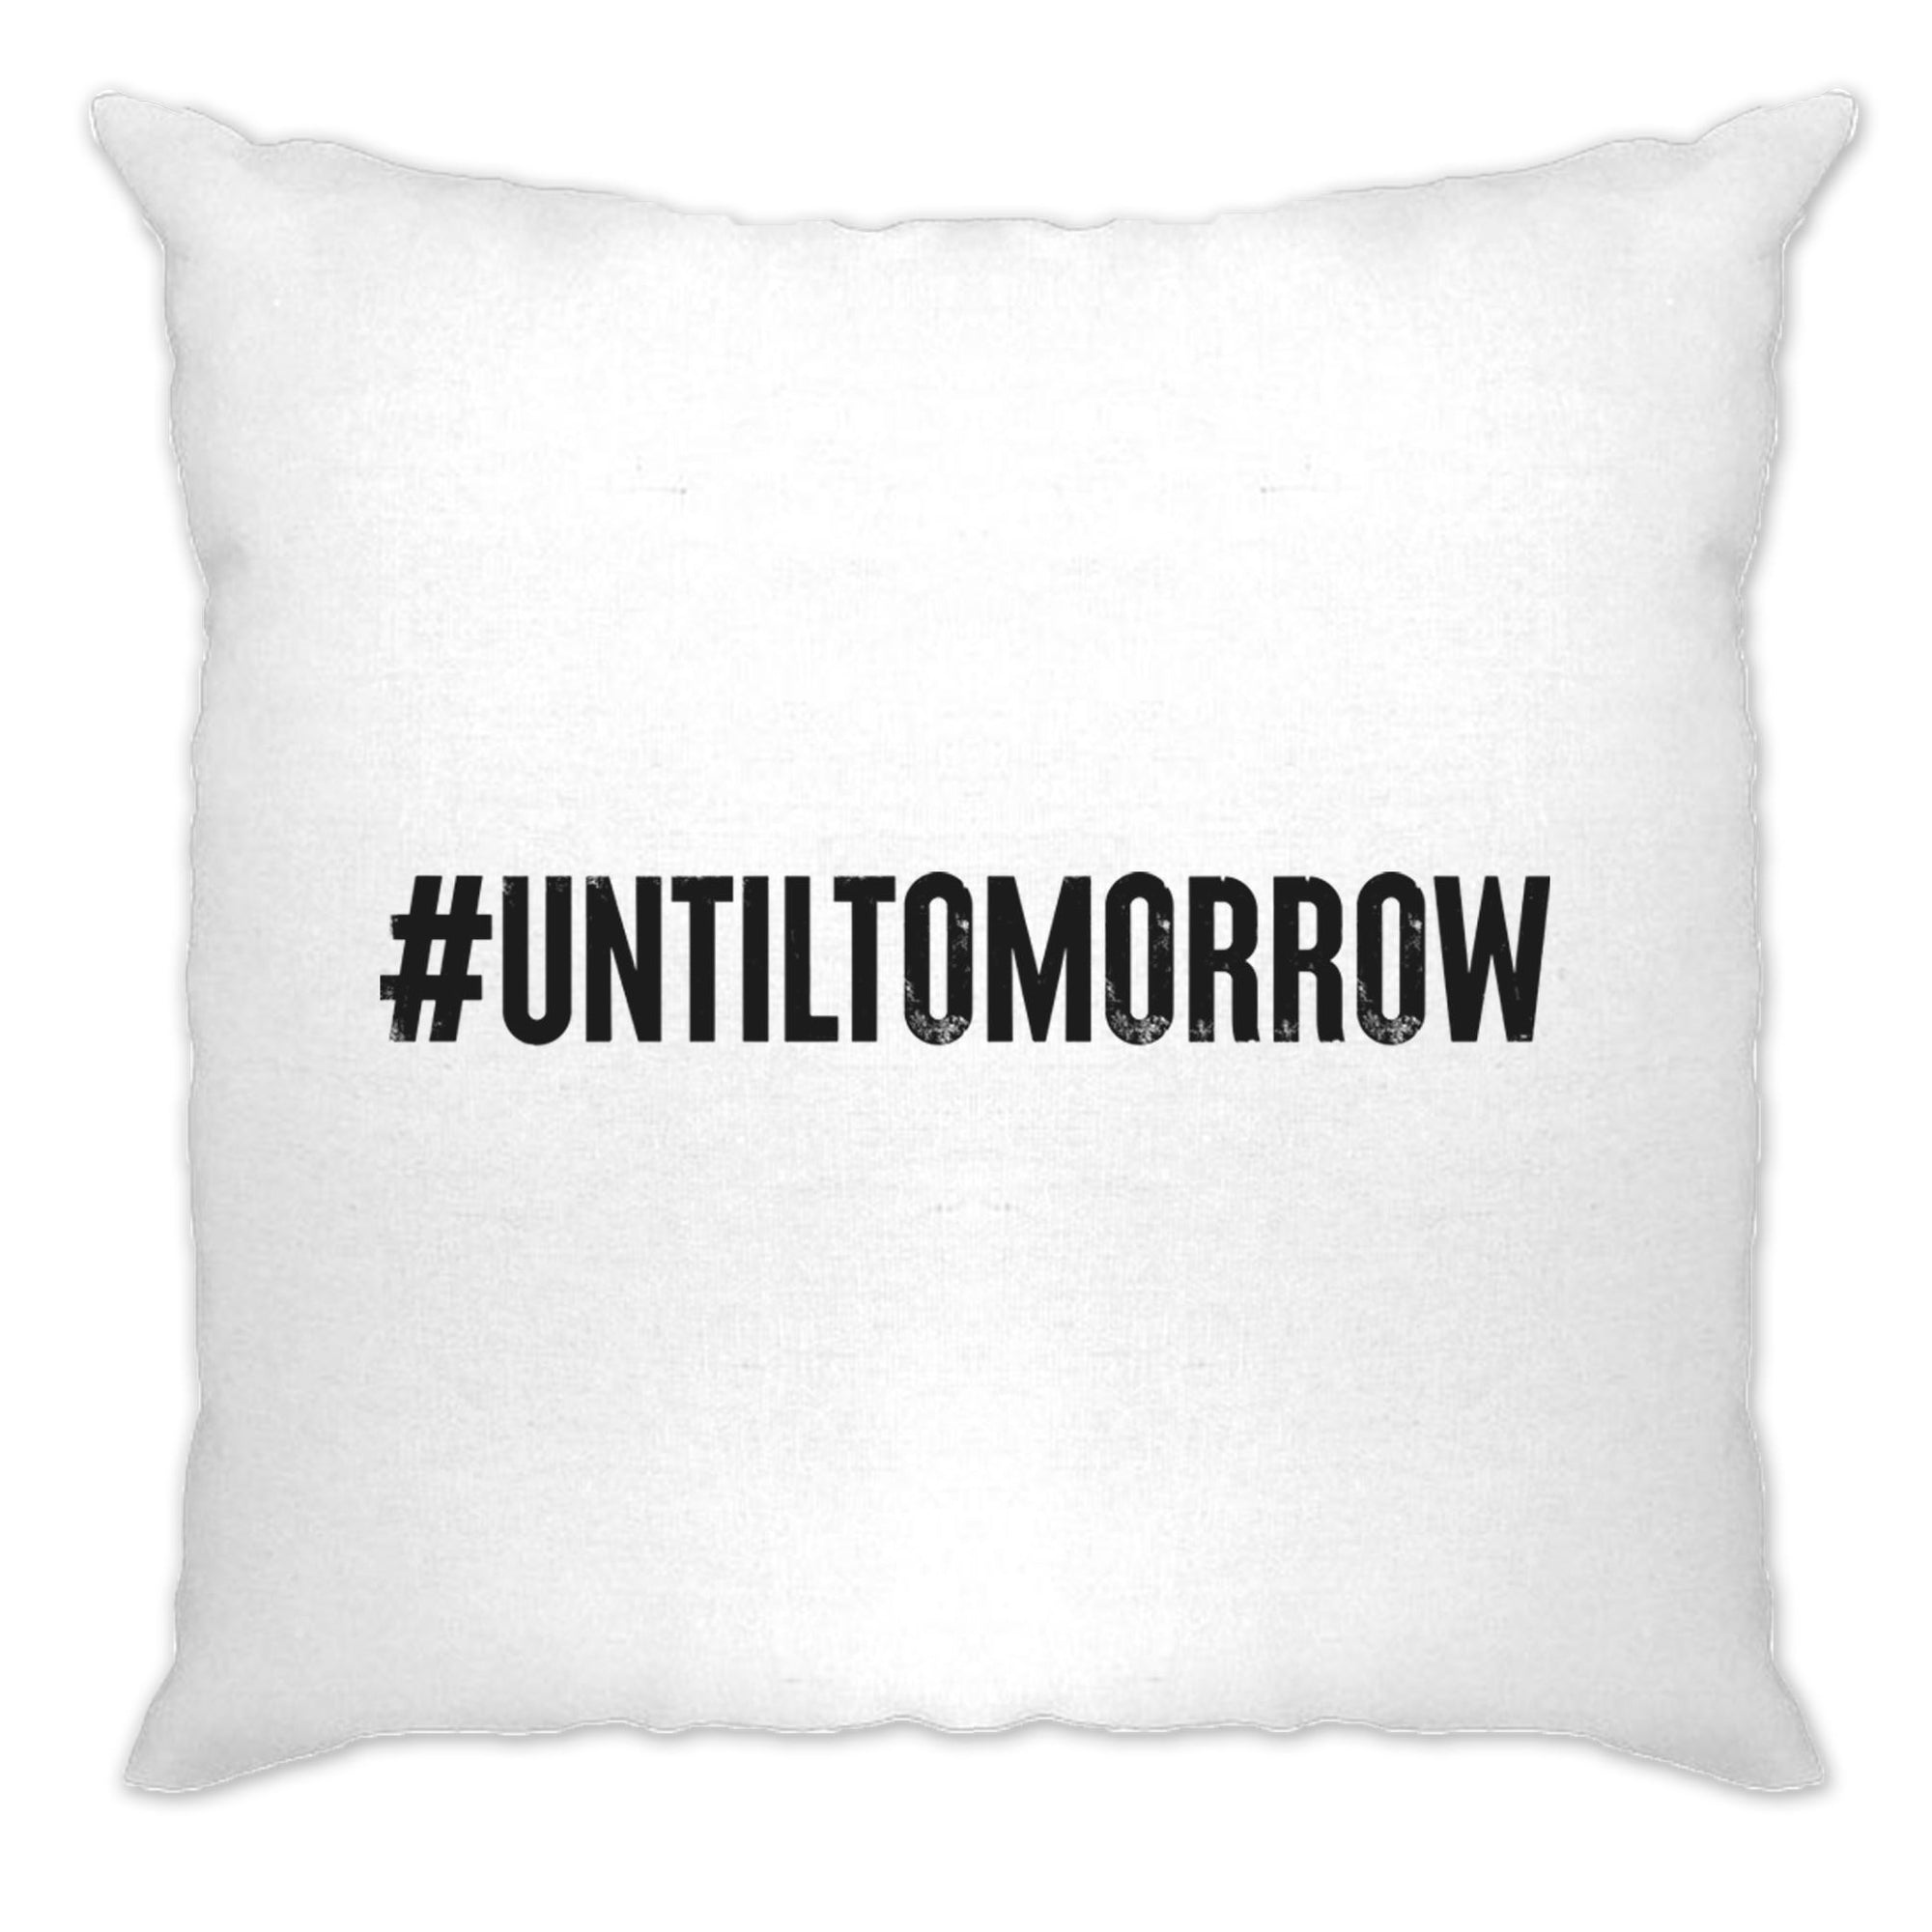 Until Tomorrow Cushion Cover #UntilTomorrow Internet Trend